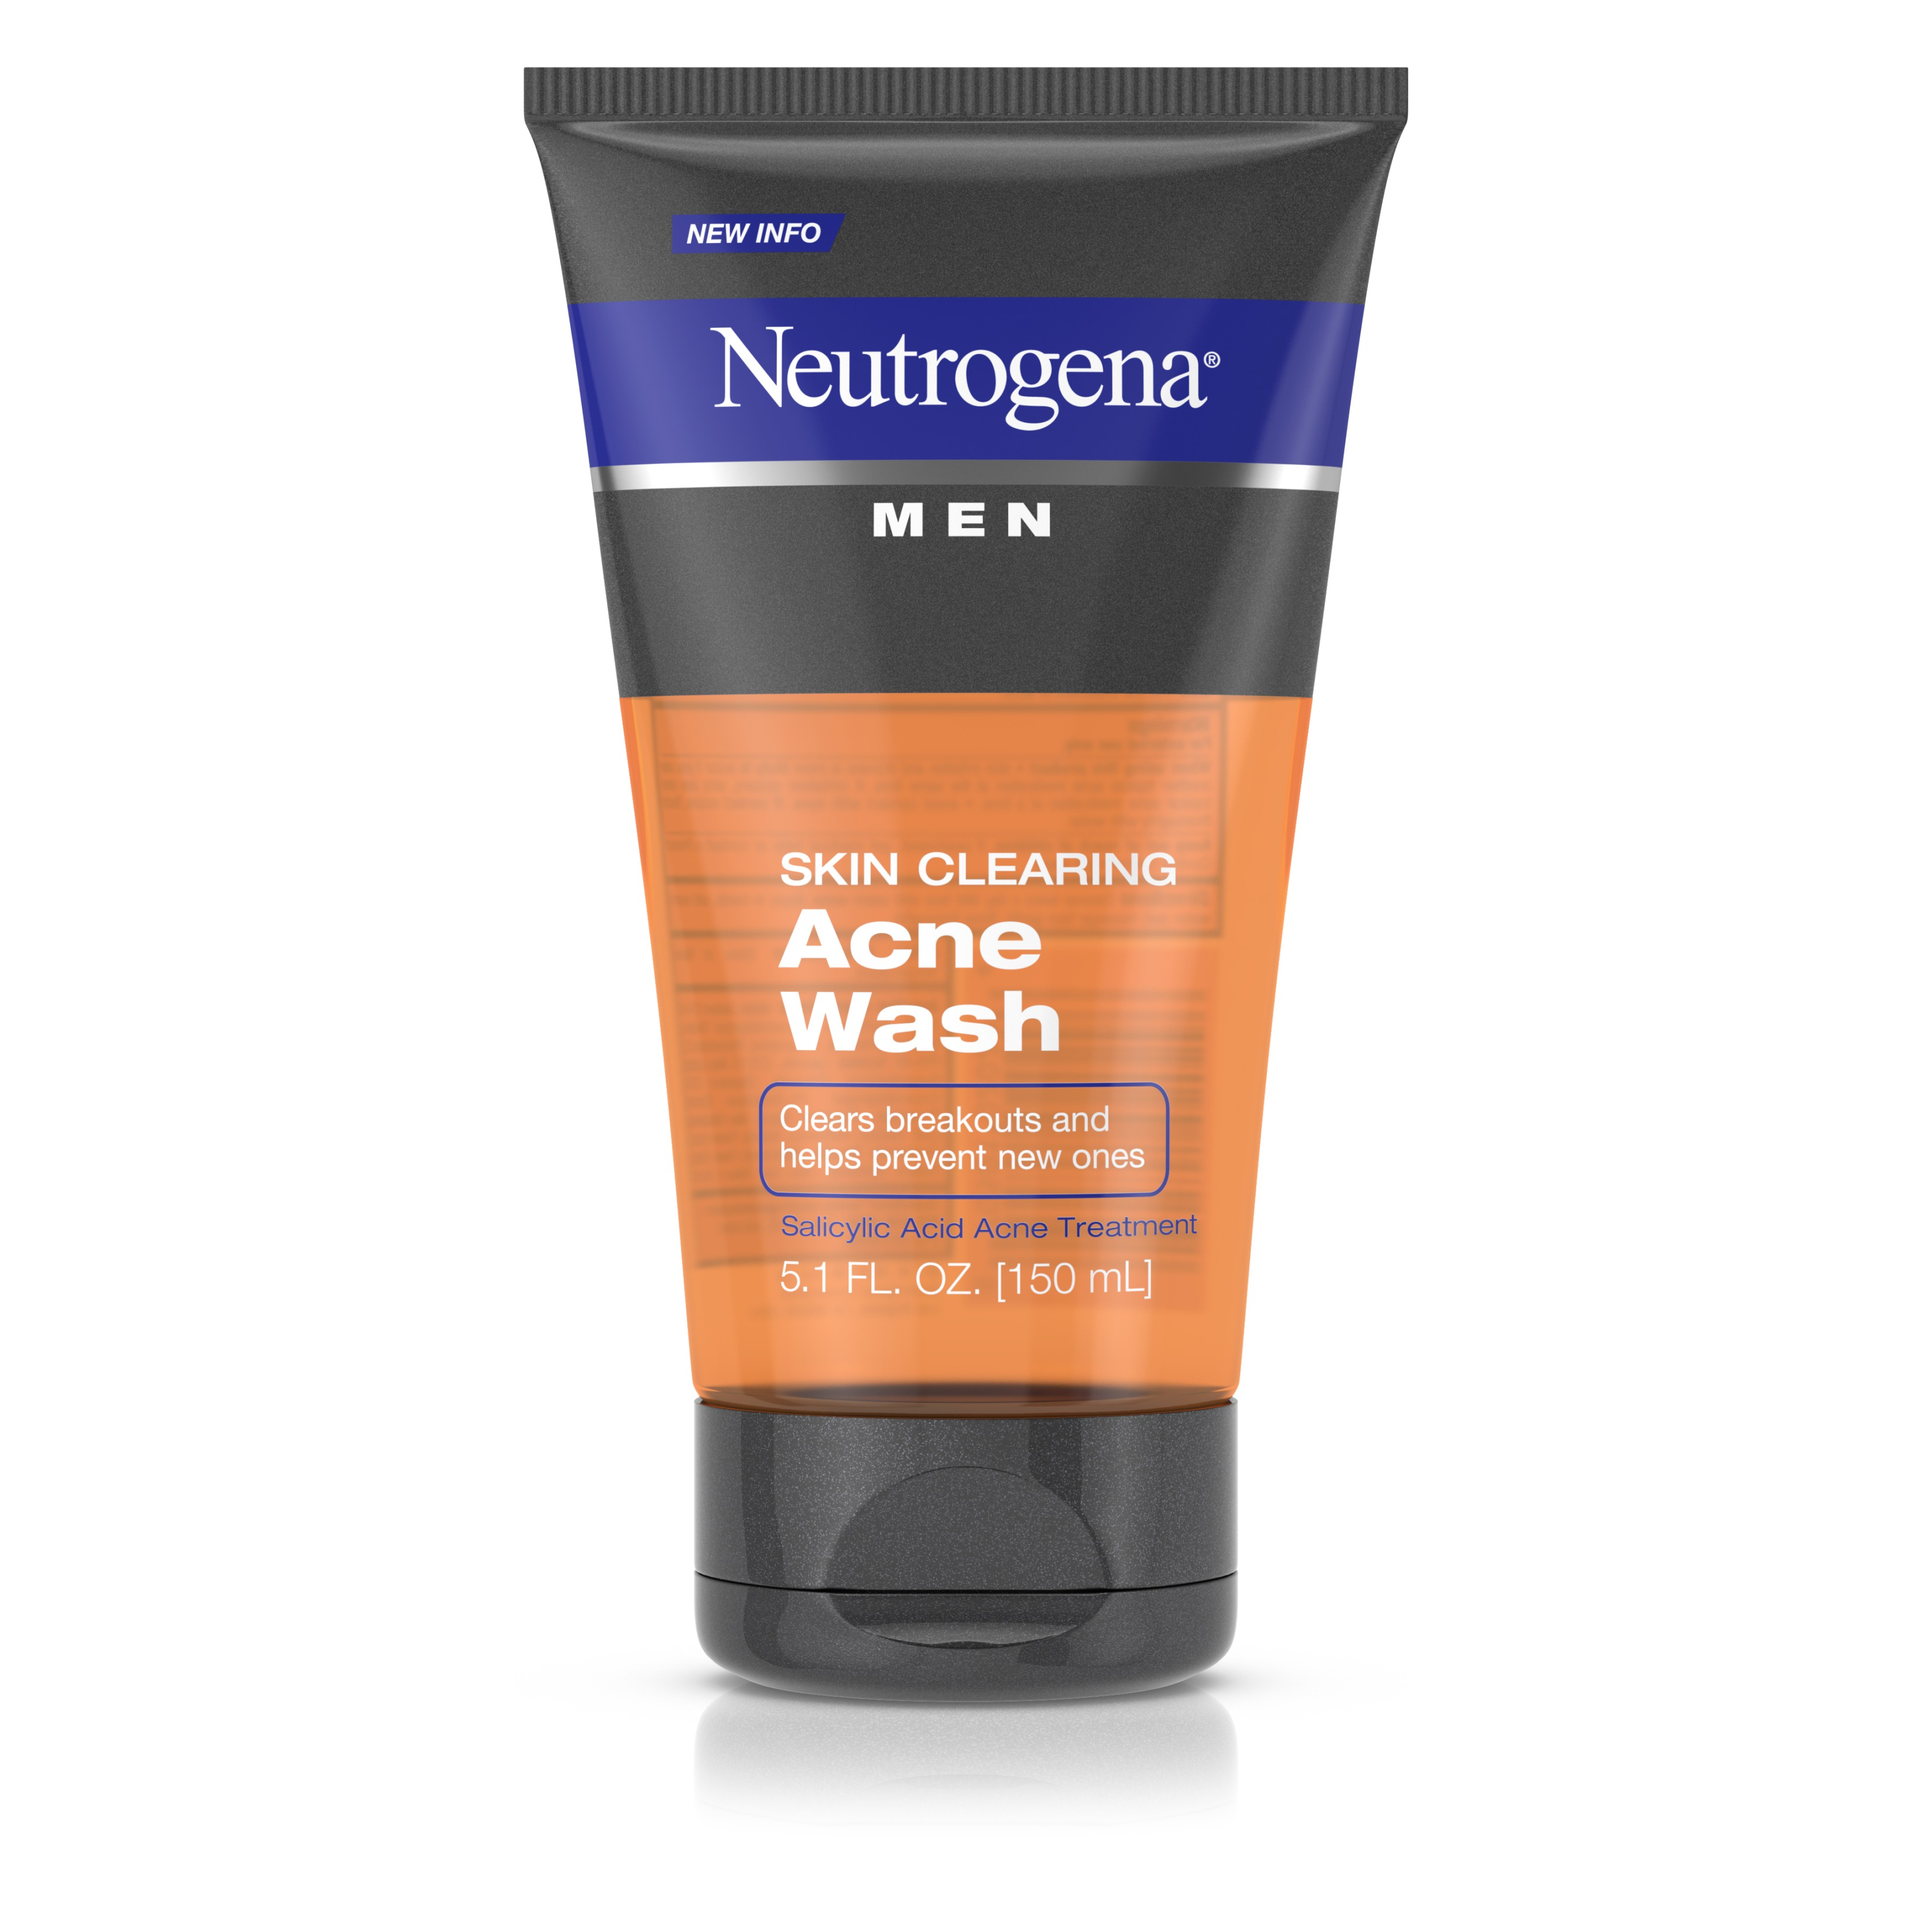 Neutrogena Men Skin Clearing Acne Wash, Salicylic Acid Acne Treatment, 5.1 Fl. Oz - Walmart.com